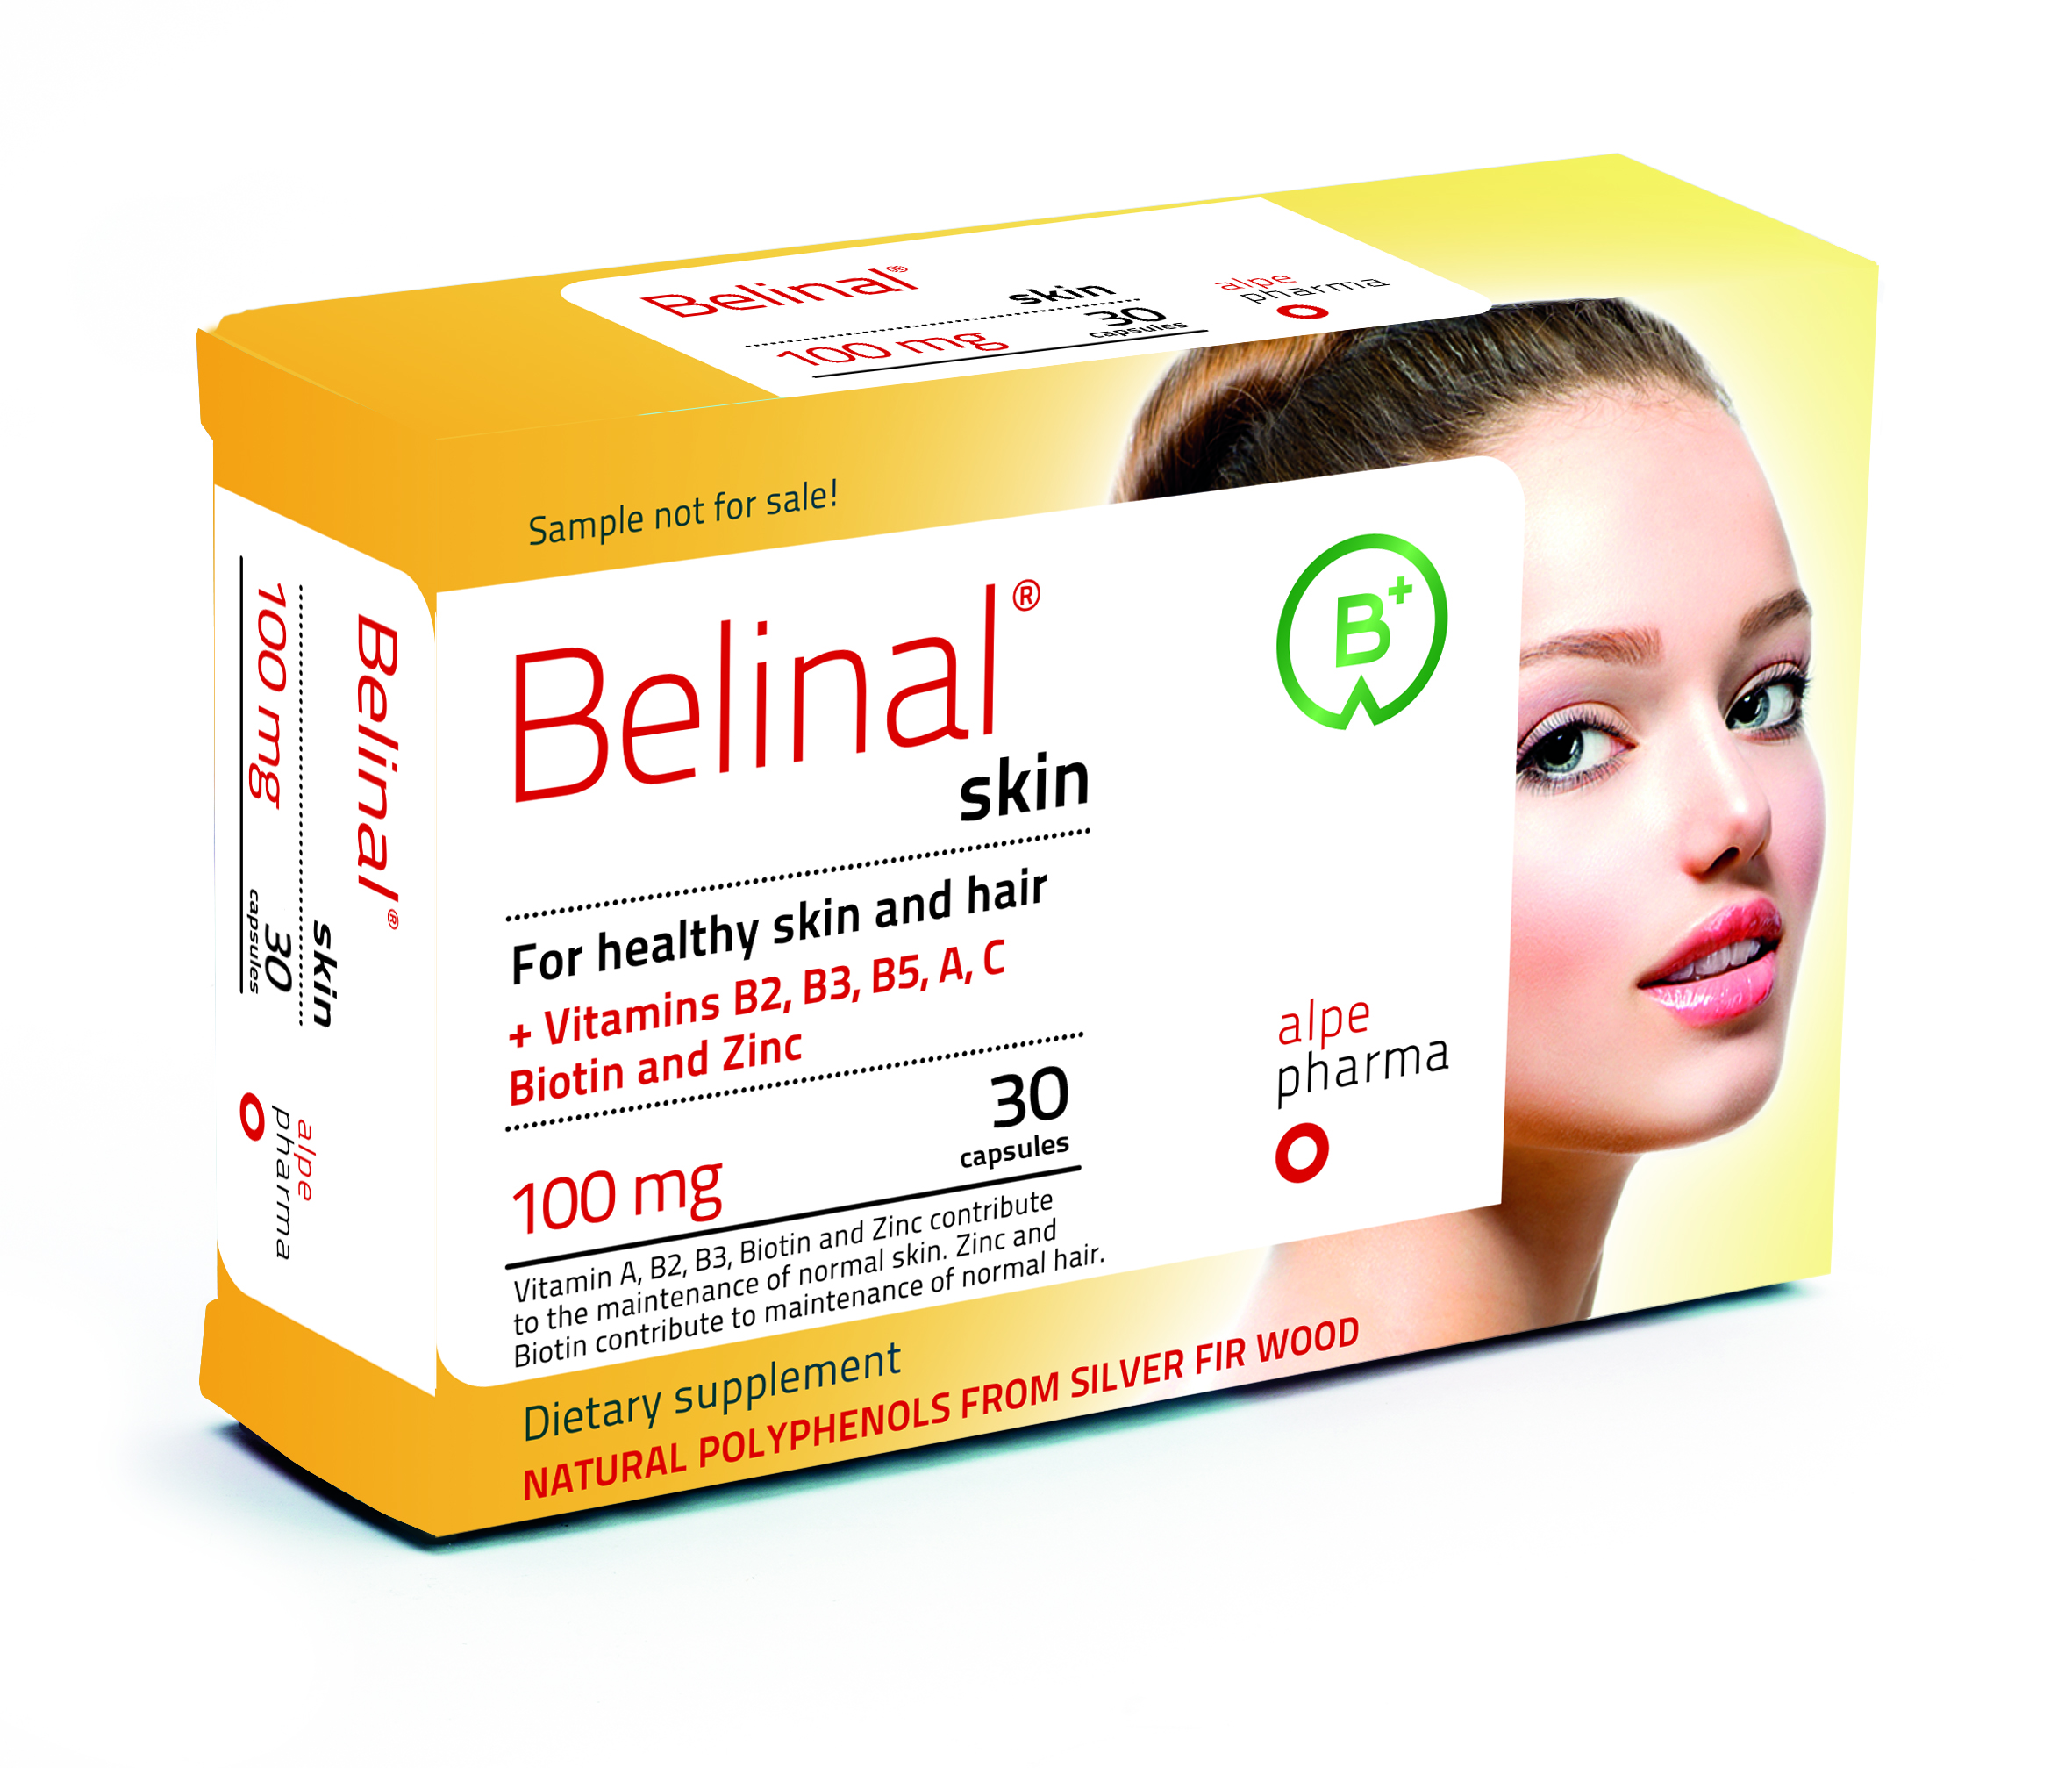 belinal skin - silver fir - for healthy skin and hair - skin rejuvenation - reduction of wrinkles - skin immune system - anti aging - to maintain skin moisture - regeneration of collagen and elastin - skin - allergies - sunning - UV rays